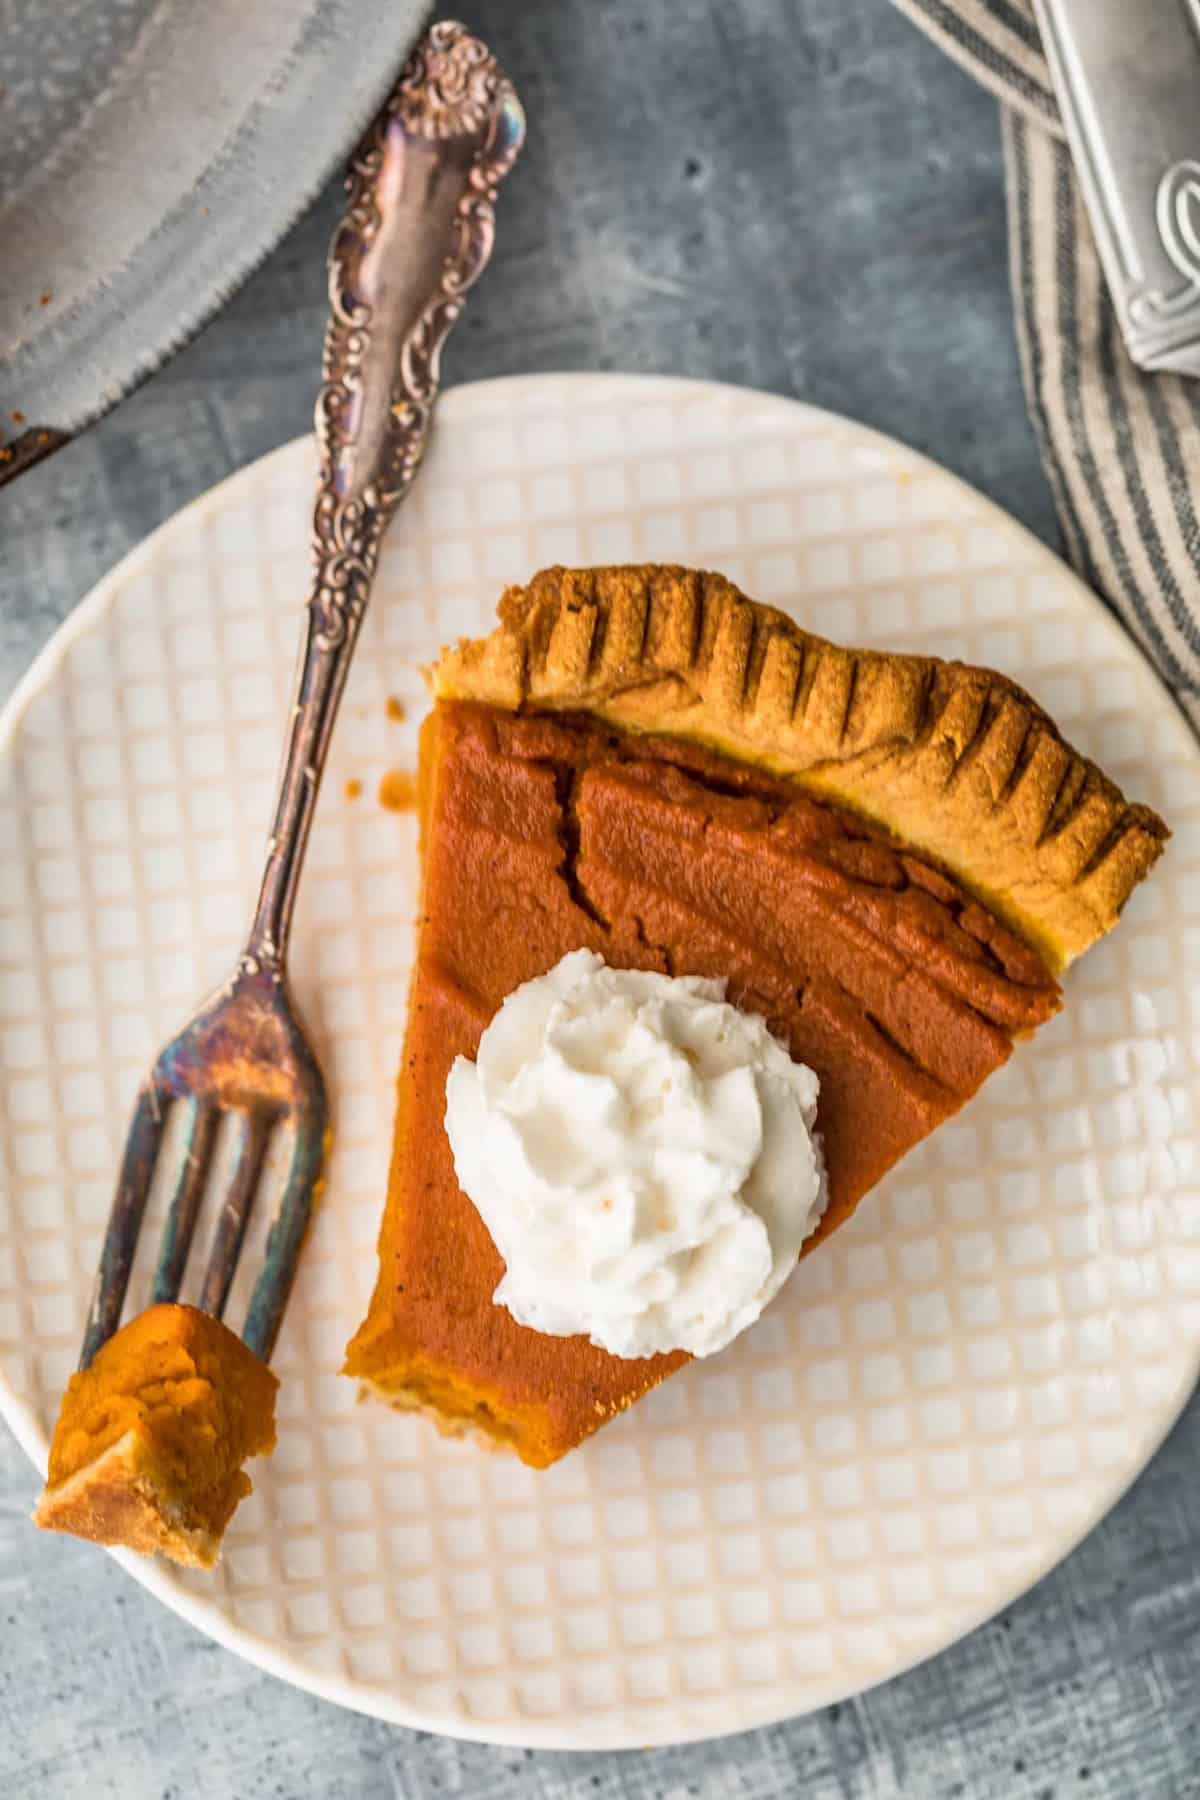 up close pic of pie on plate with fork